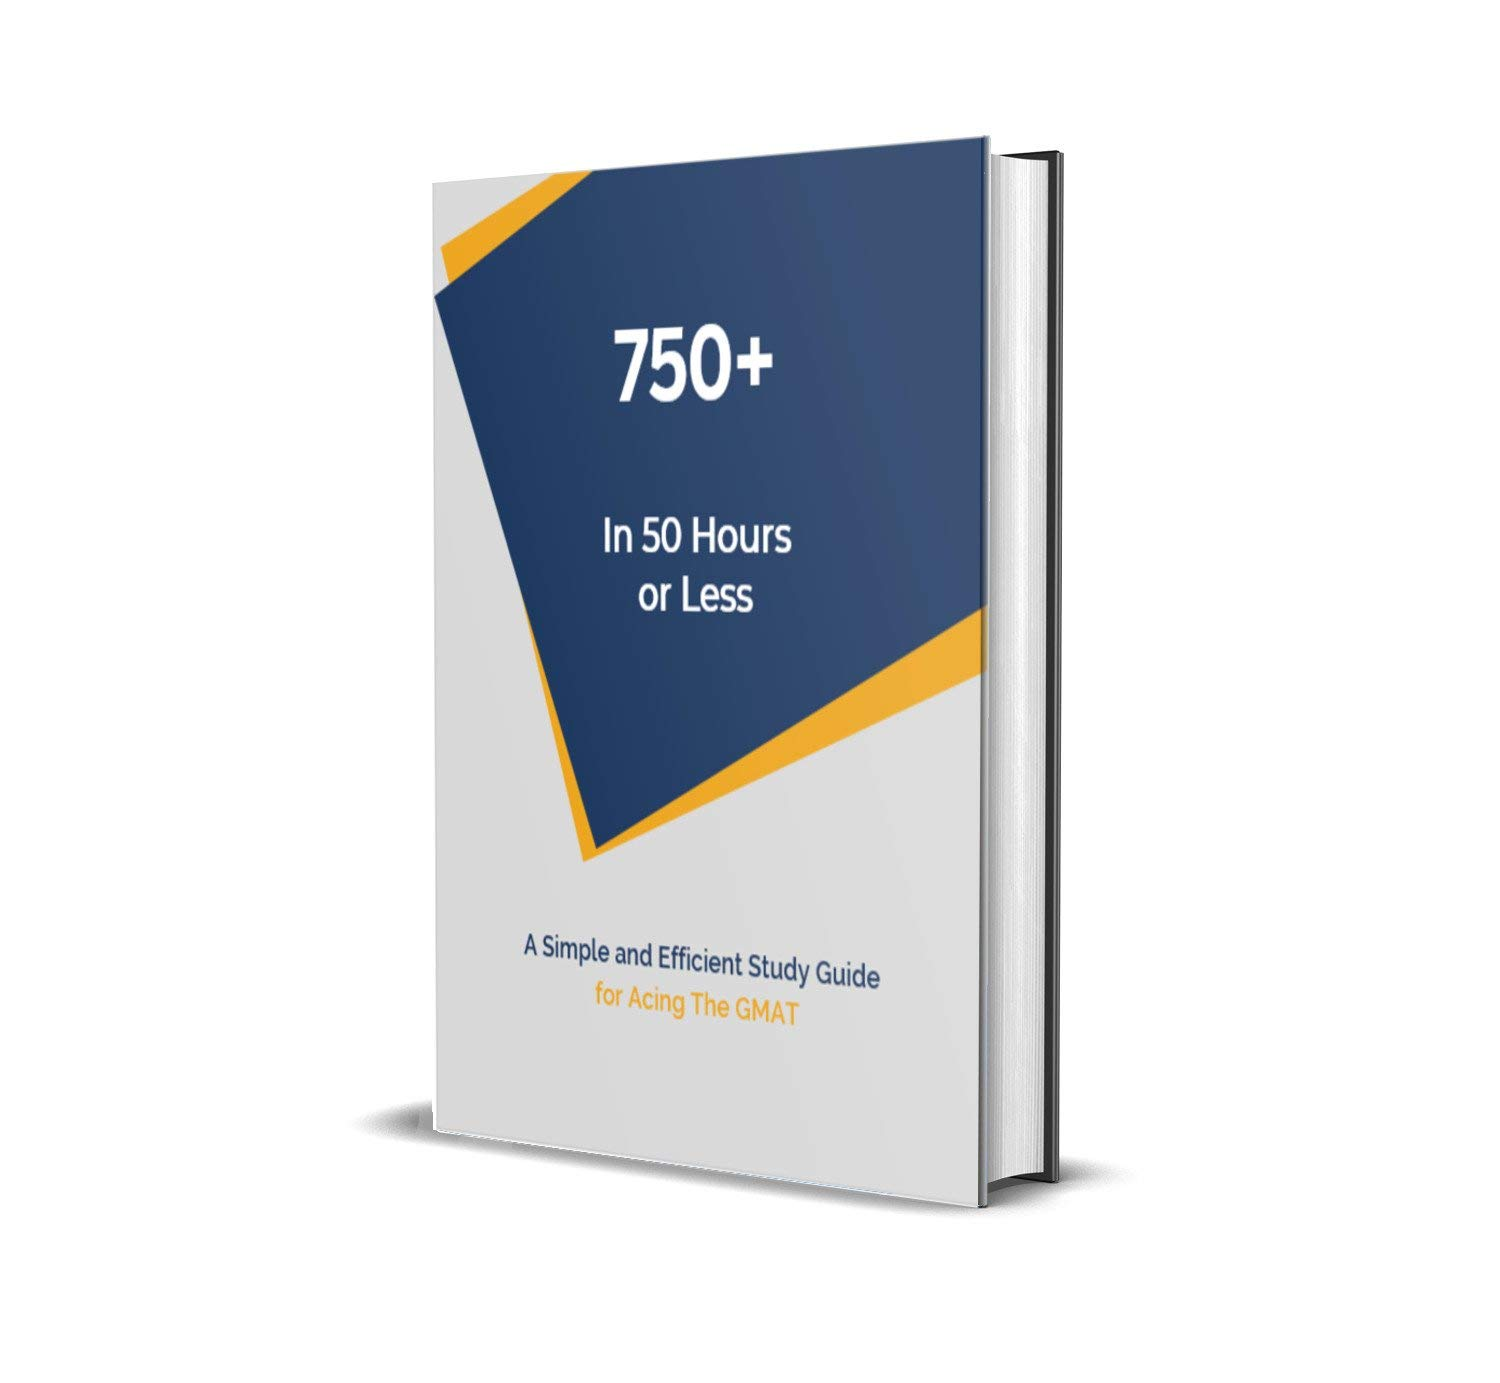 750+ In 50 Hours or Less: Self-Study Guide For Acing The GMAT